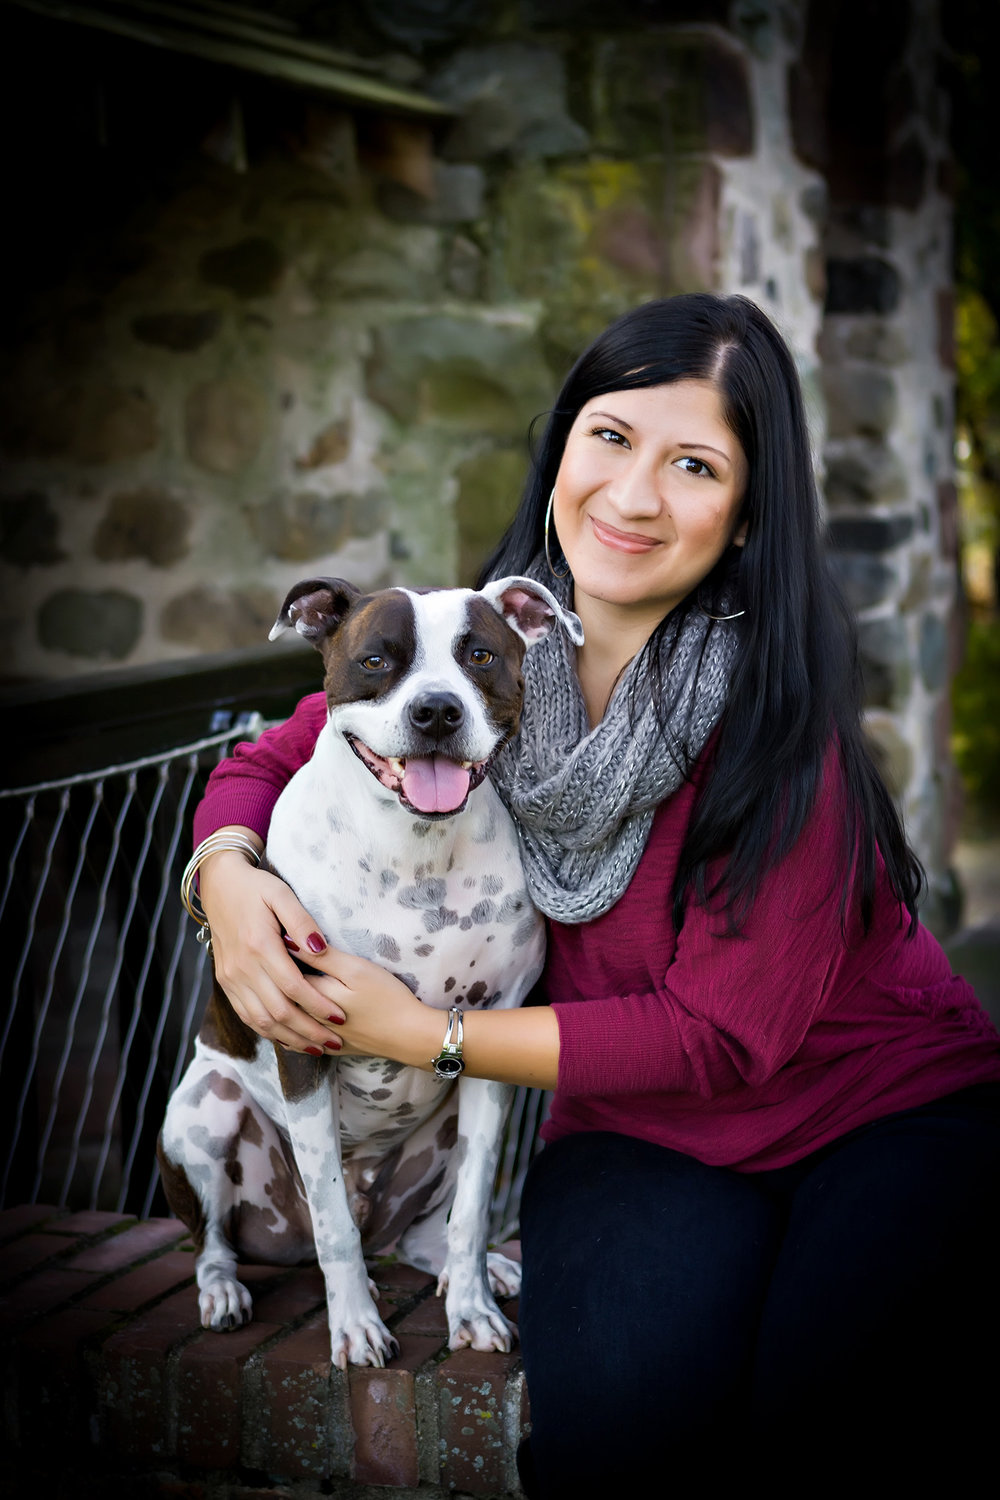 Portrait of  a woman and her dog at the park in Paramus